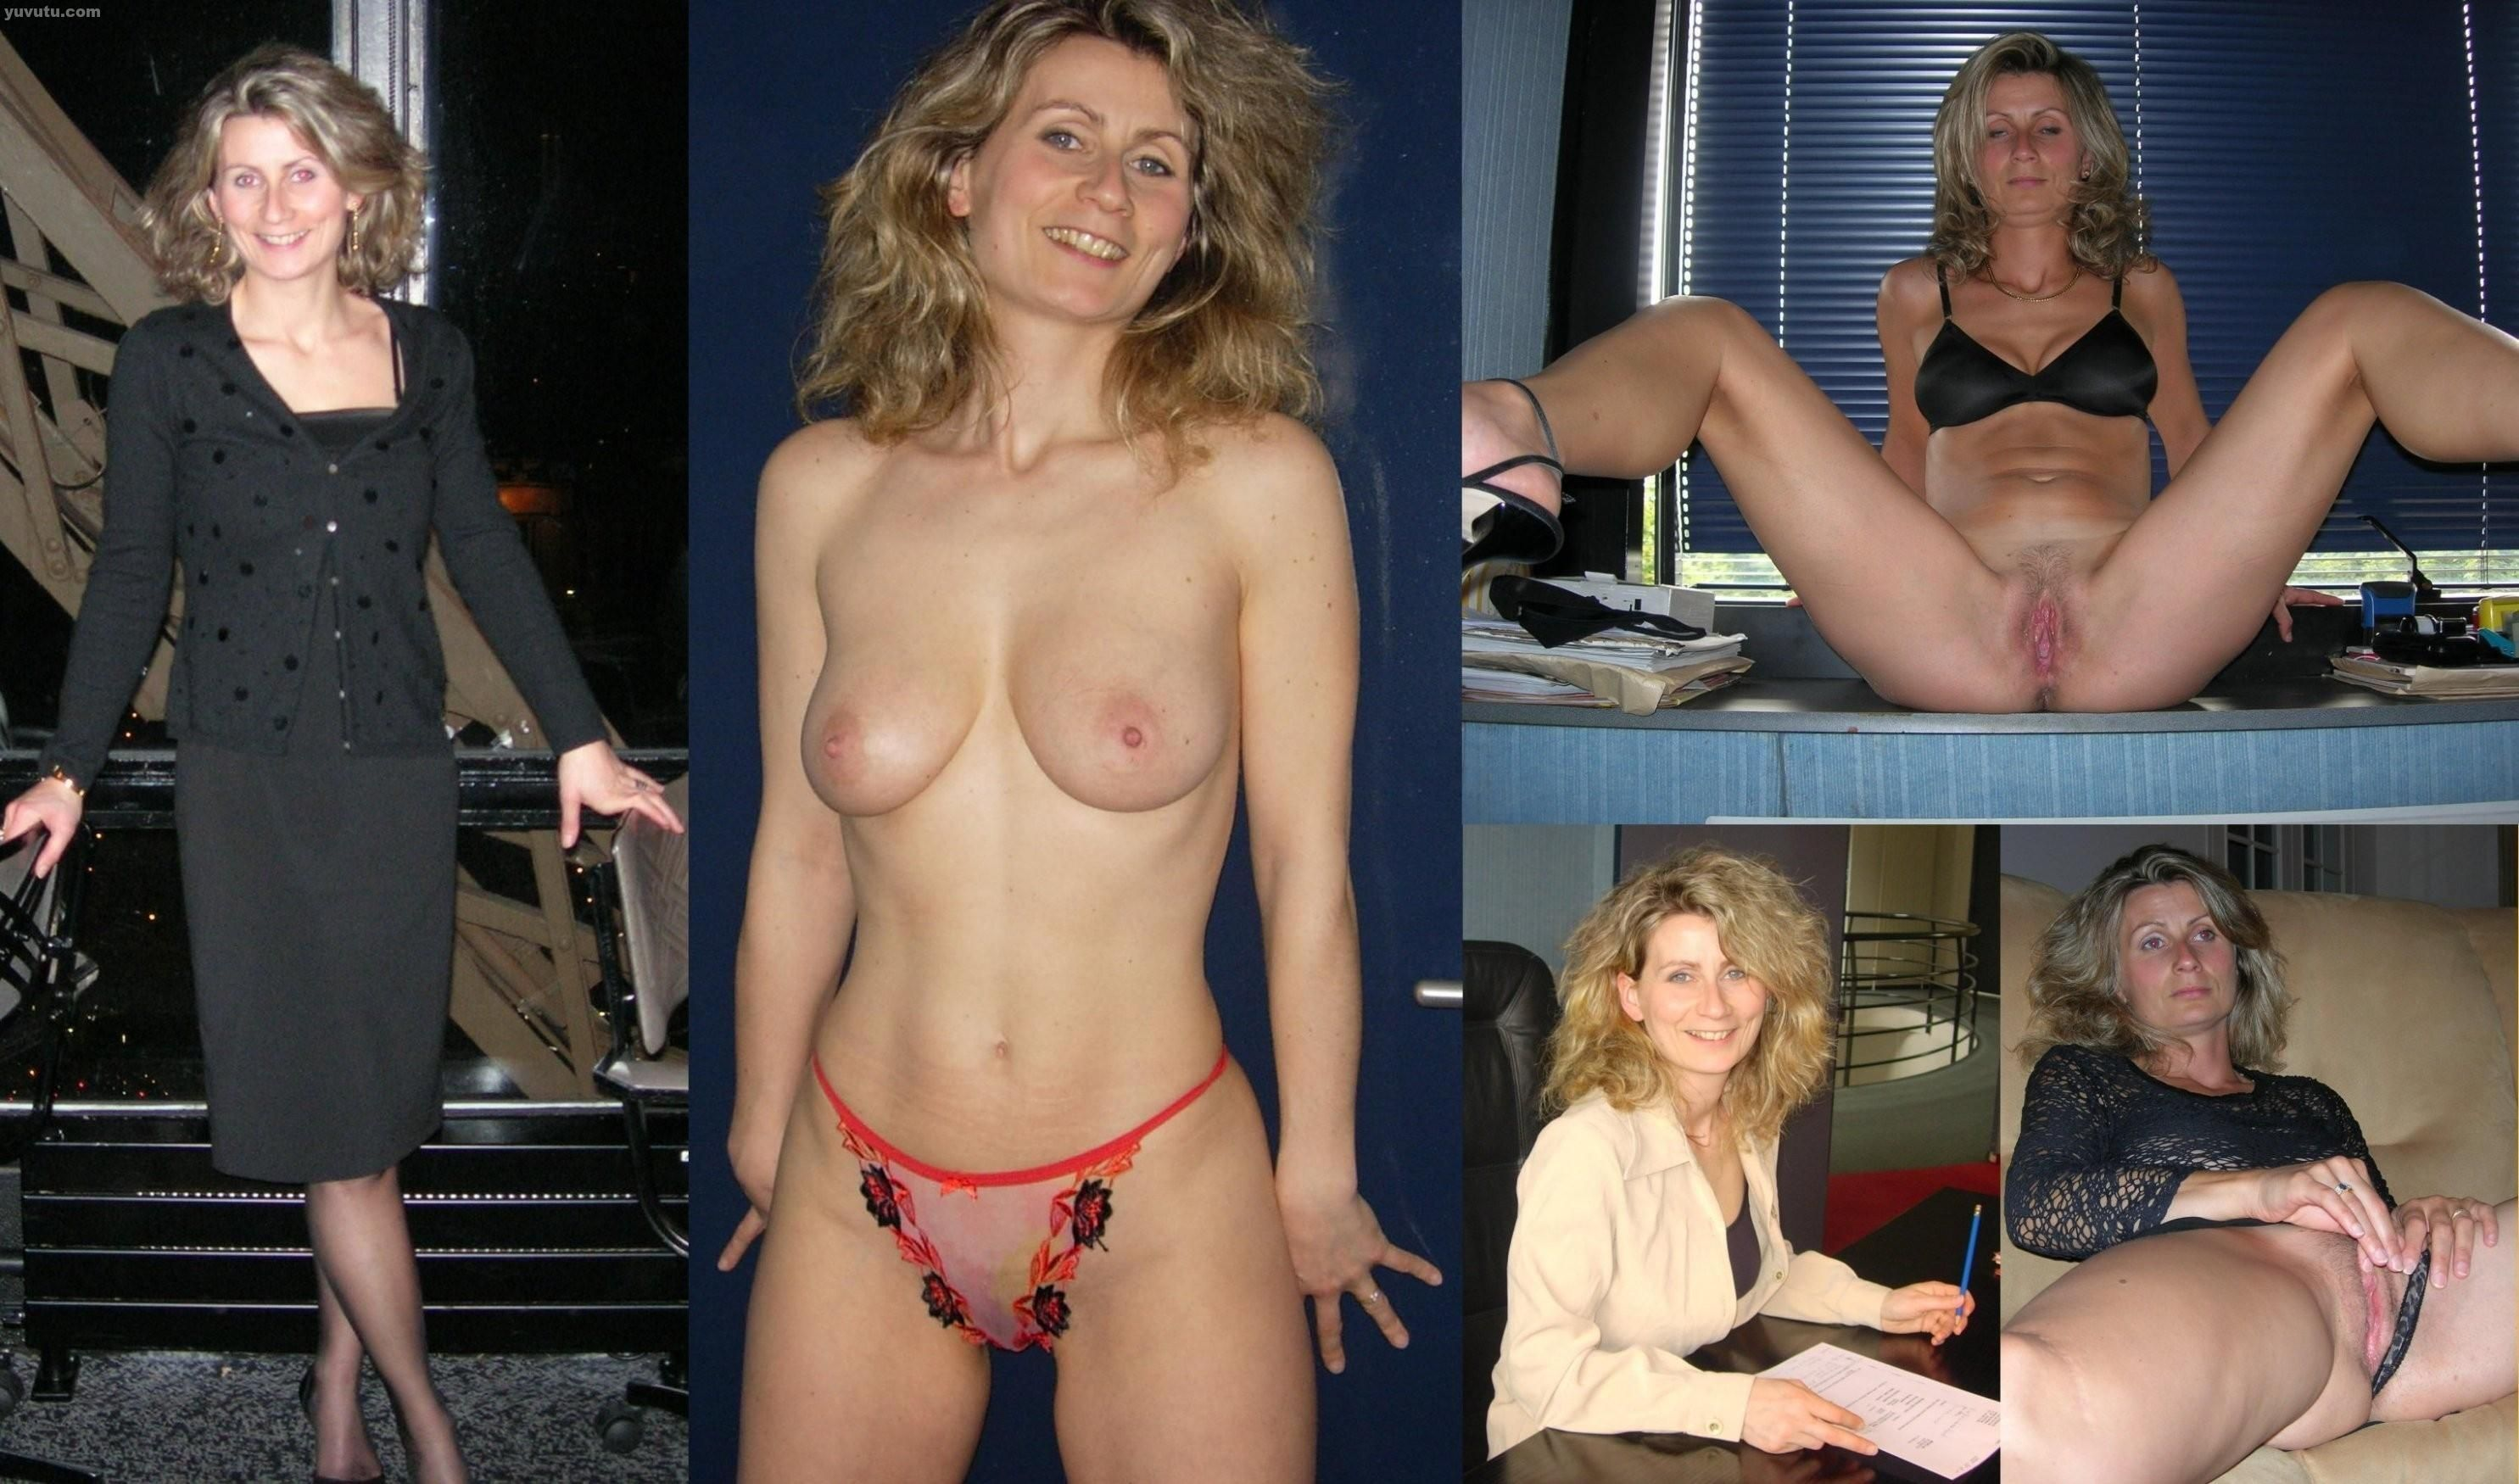 Whole thing older ex wifes naked pictures hot! Thanks!